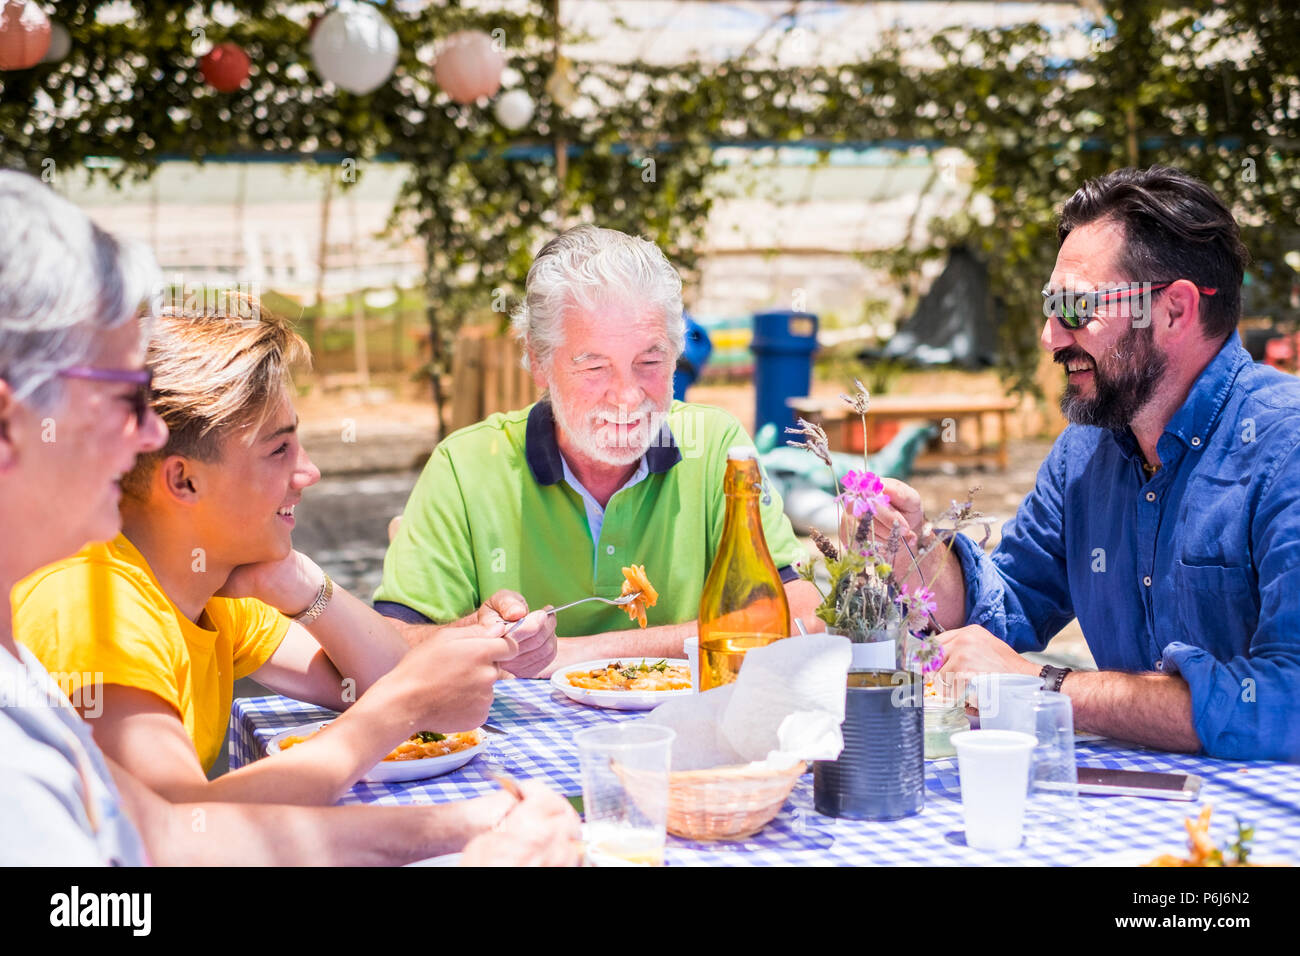 happy family eating together in outdoor restaurant. colors and happiness for cacuasian young and old people. son, father, grandfathers enjoy leisure a - Stock Image